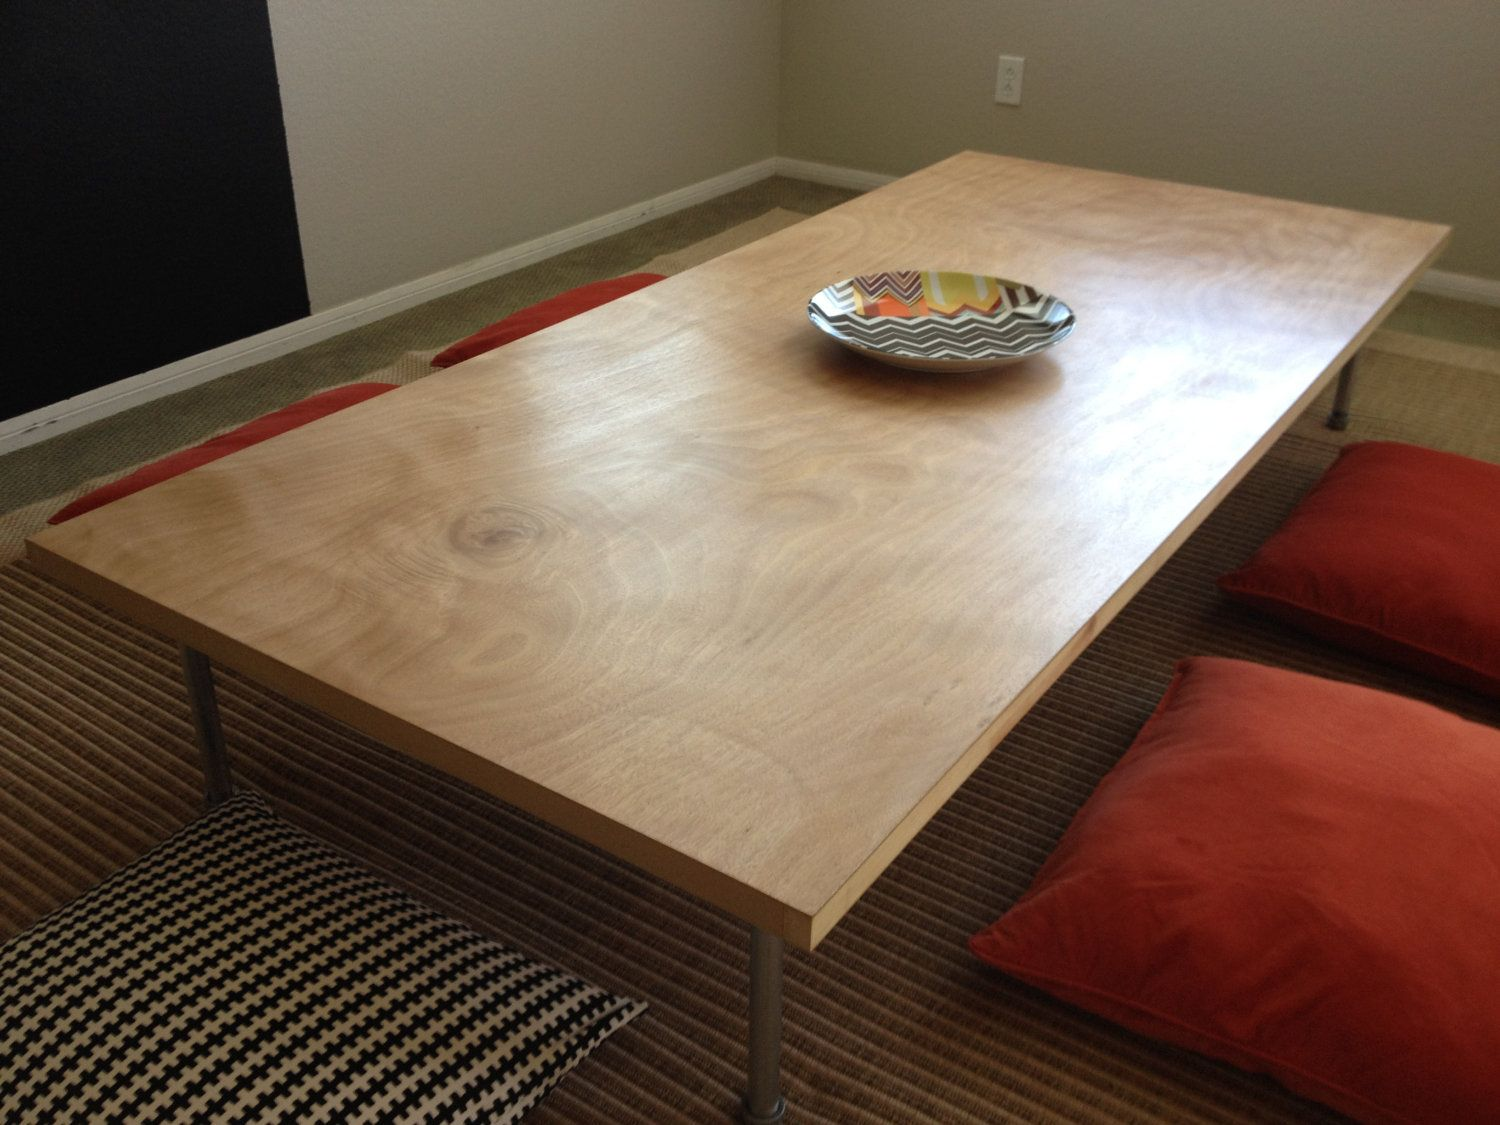 Pin By Joy Witte On Furniture Dining Table Dimensions Low Dining Table Diy Coffee Table [ 1125 x 1500 Pixel ]